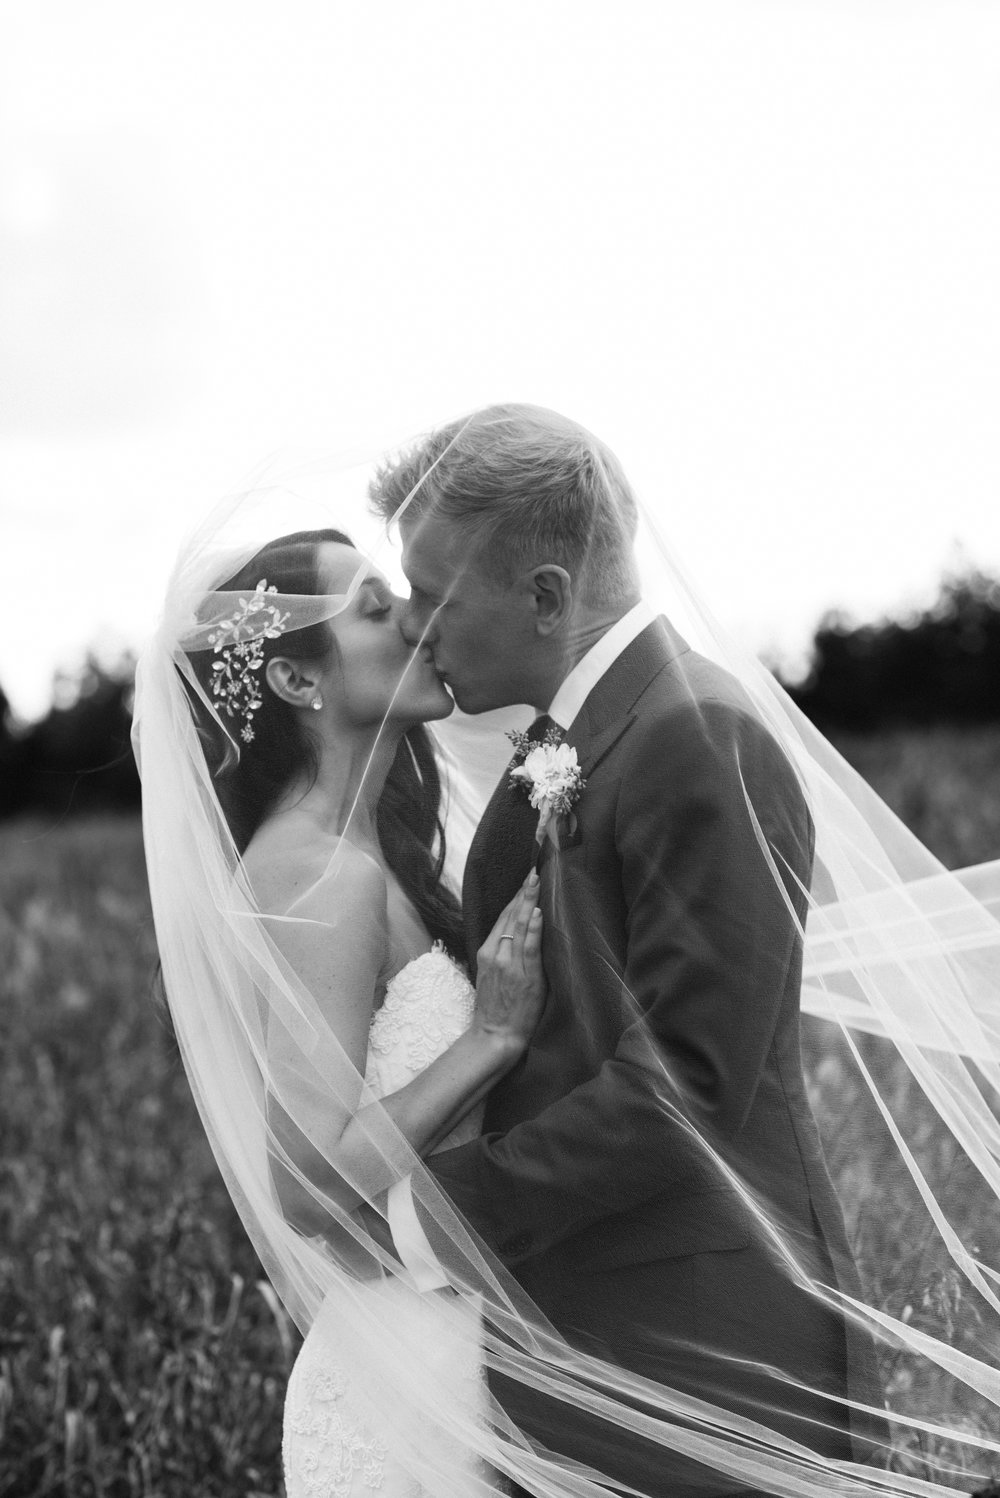 Kissing beneath the bride's veil is a romantic, editorial style photo that all couples should have in their wedding album. See more from  Ashton & Matt's wedding    at St. Marys Golf & Country Club. Photography:  Erin Leydon .